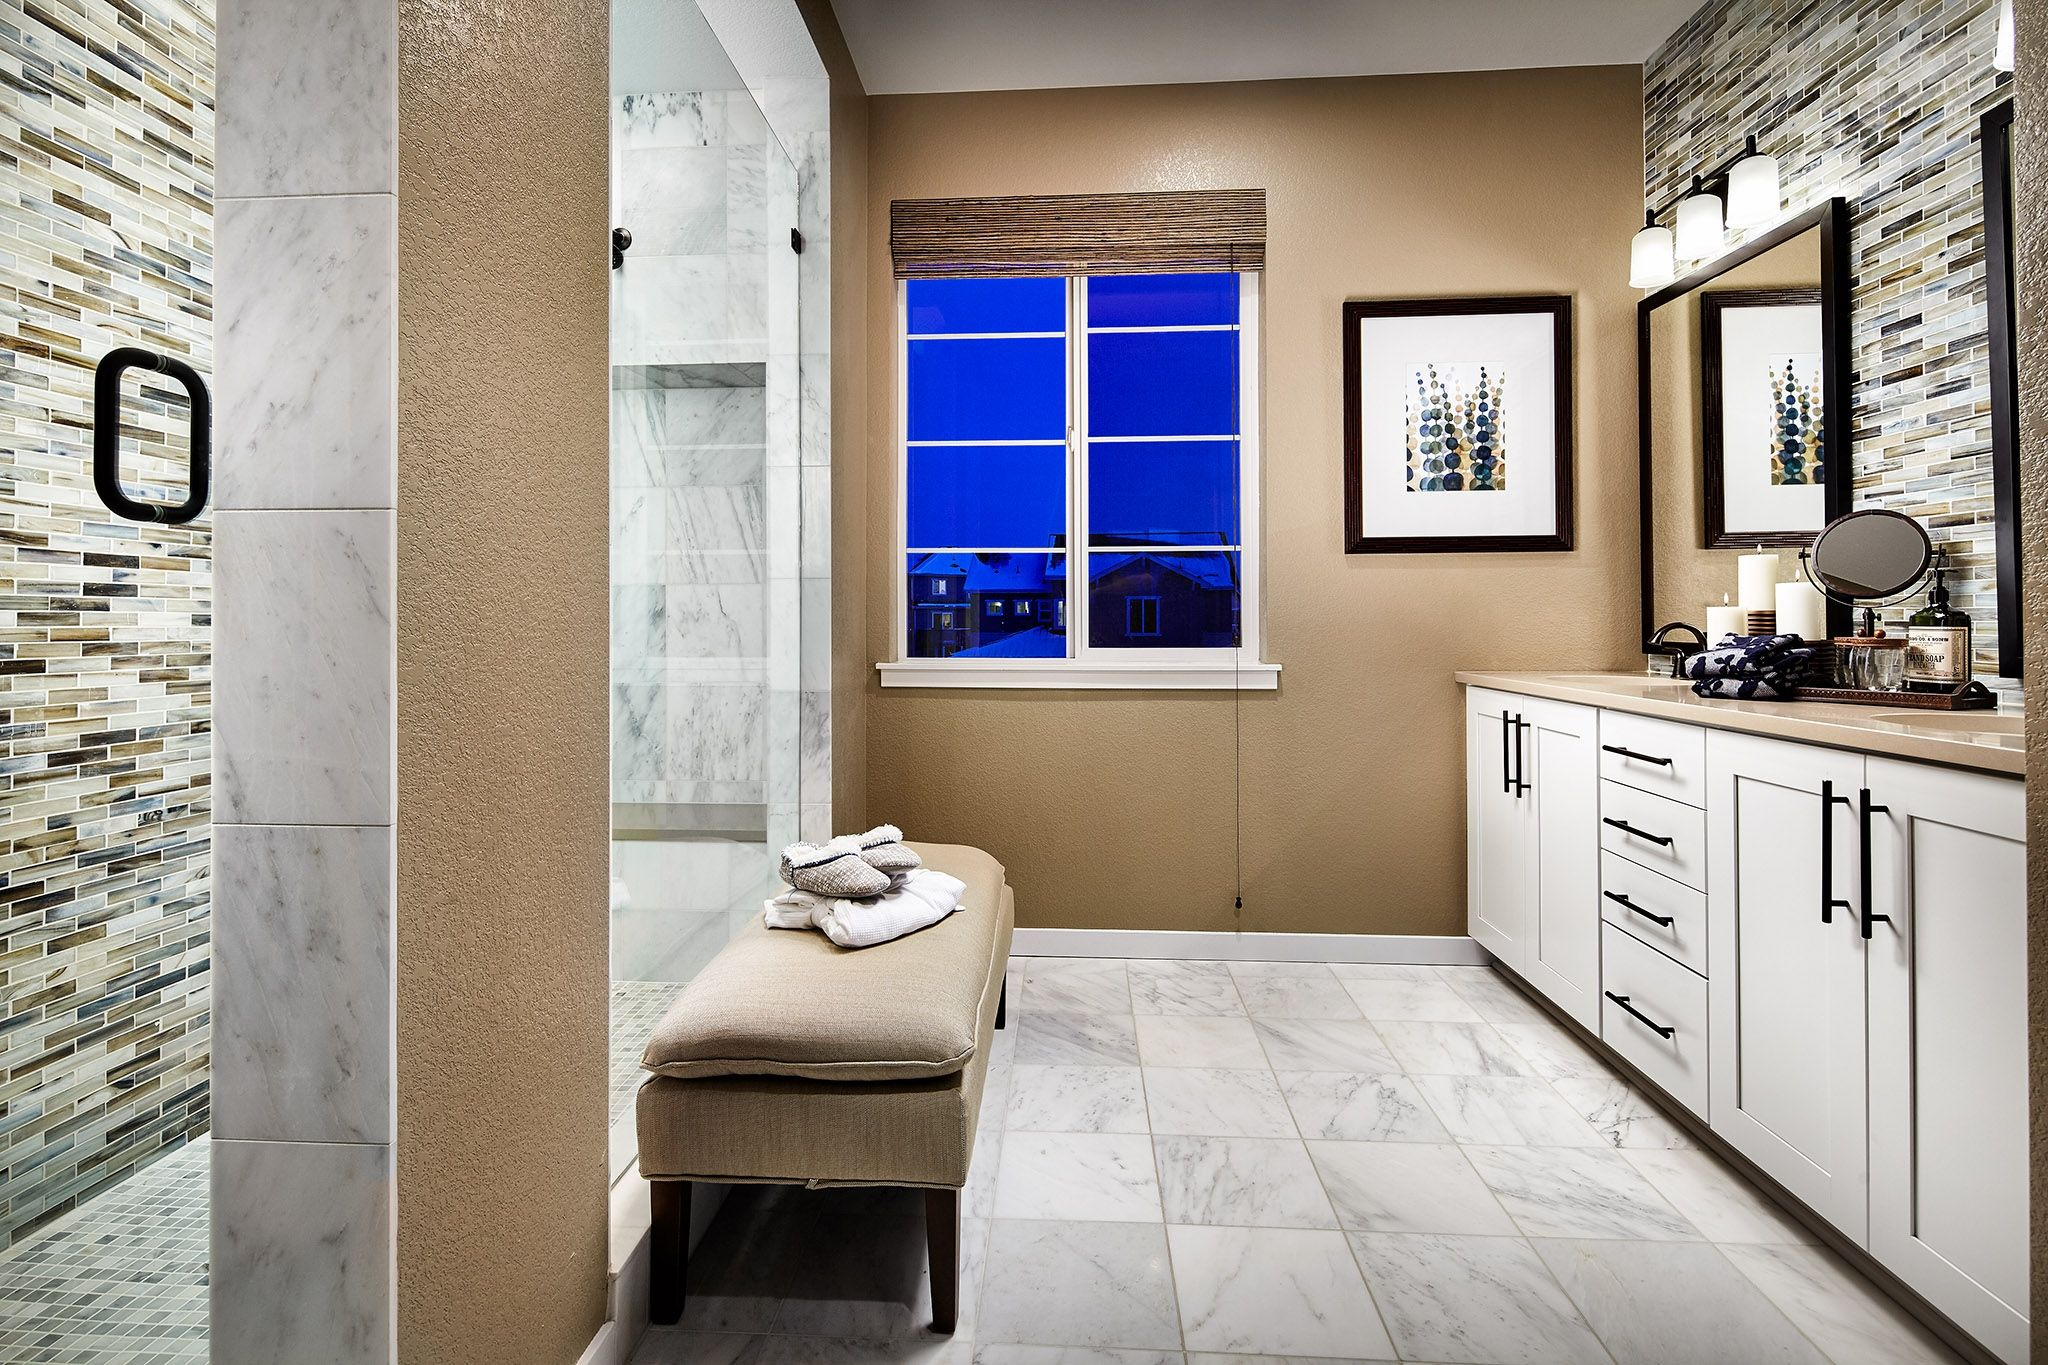 Bathroom featured in the 5204  Torrey Pine By Shea Homes in Denver, CO